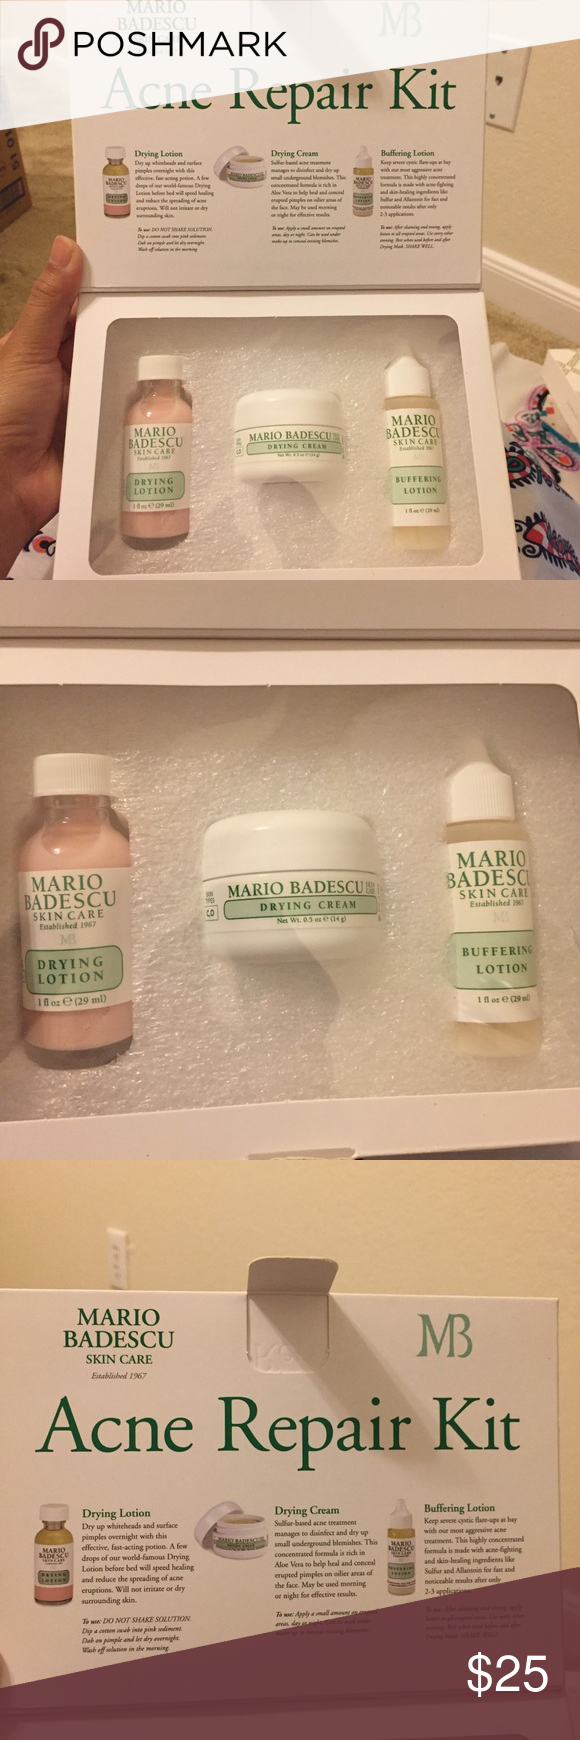 Mario Badescu Acne Repair Kit New Comes In Box Sephora Other